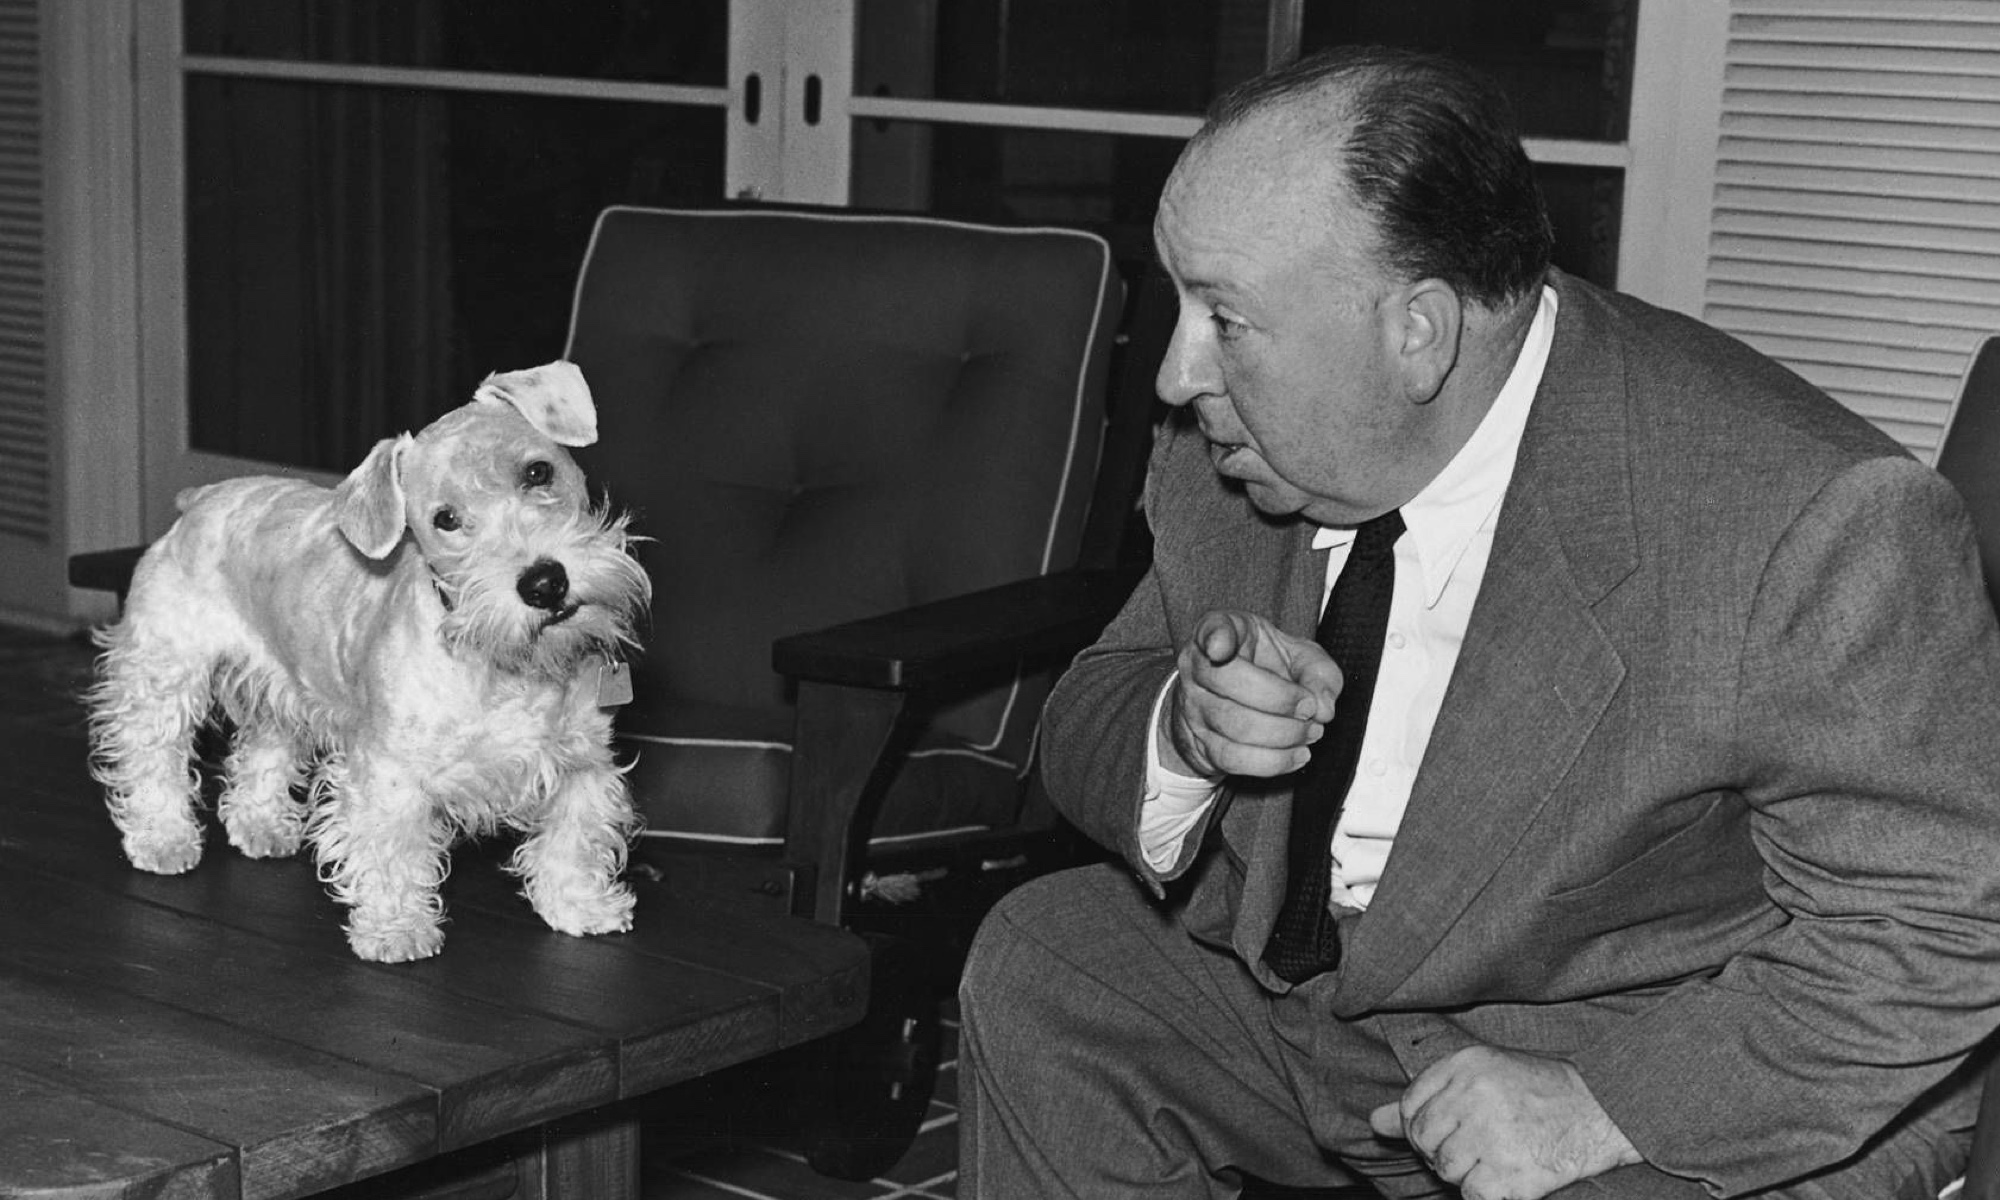 Alfred Hitchcock and his dog experience a small disagreement.